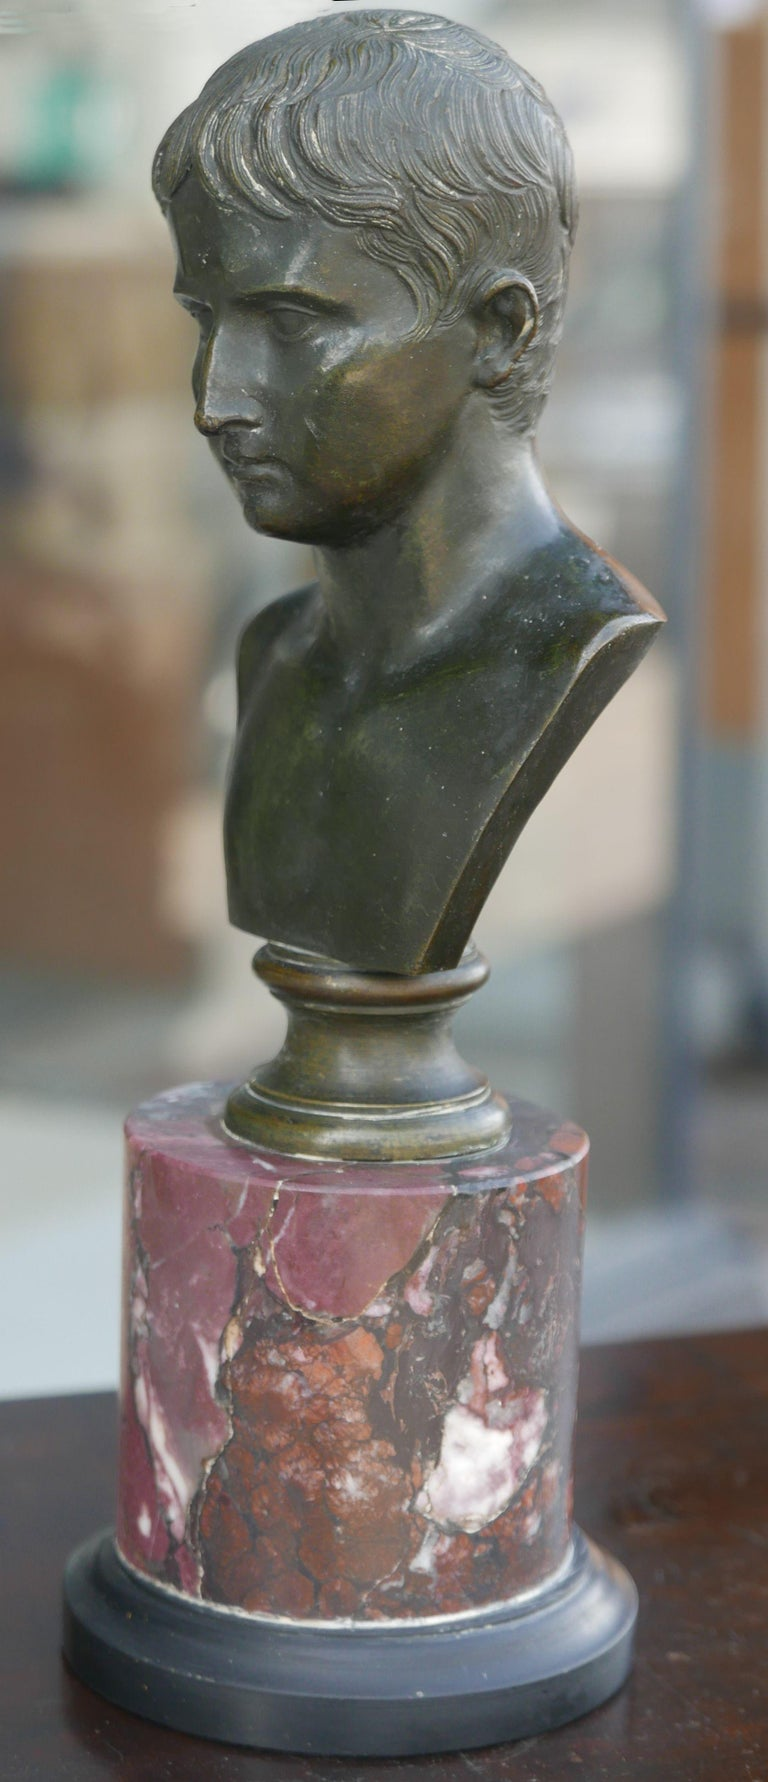 Nicely detailed Bronze bust of Caesar with terrific age acquired patina made in Italy during the late 19th century during the Grand Tour.